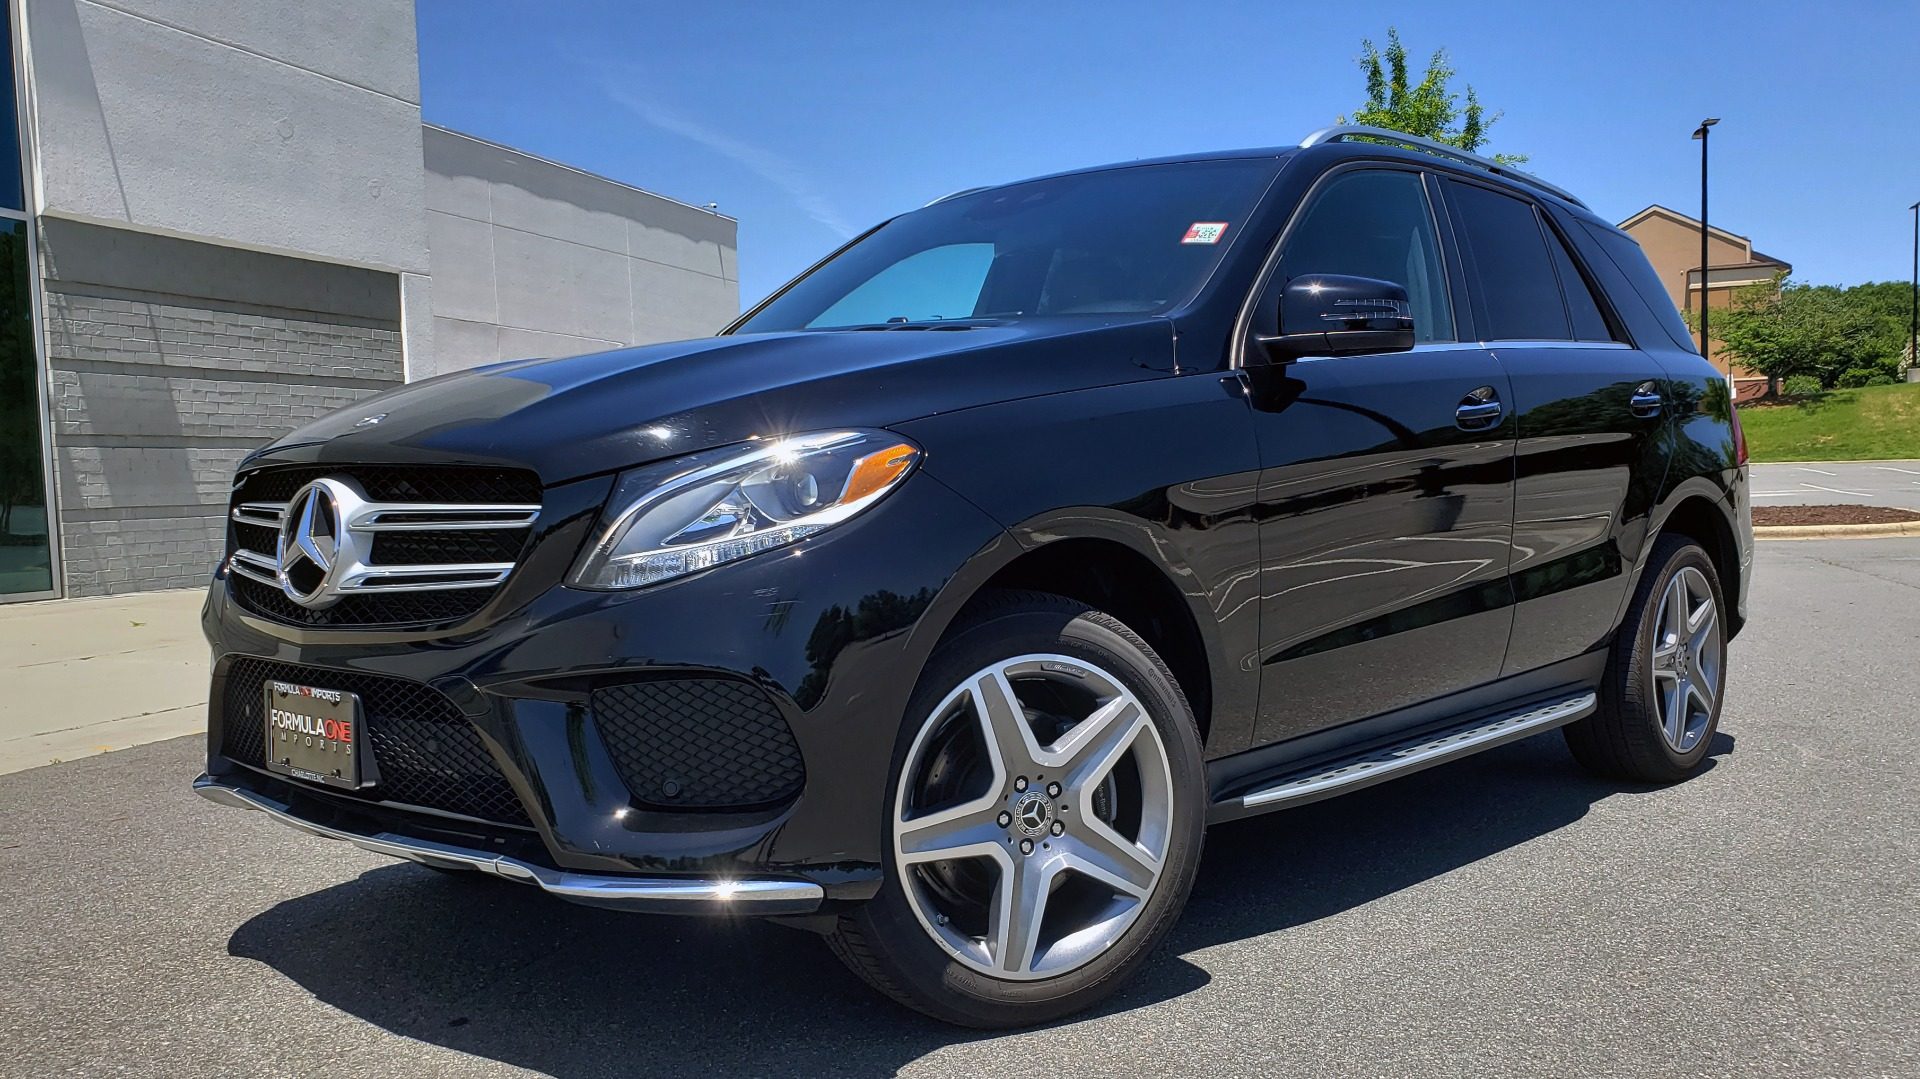 Used 2018 Mercedes-Benz GLE 350 4MATIC PREMIUM / NAV / AMG LINE INT / H/K SND / SUNROOF / REARVIEW for sale $39,995 at Formula Imports in Charlotte NC 28227 1